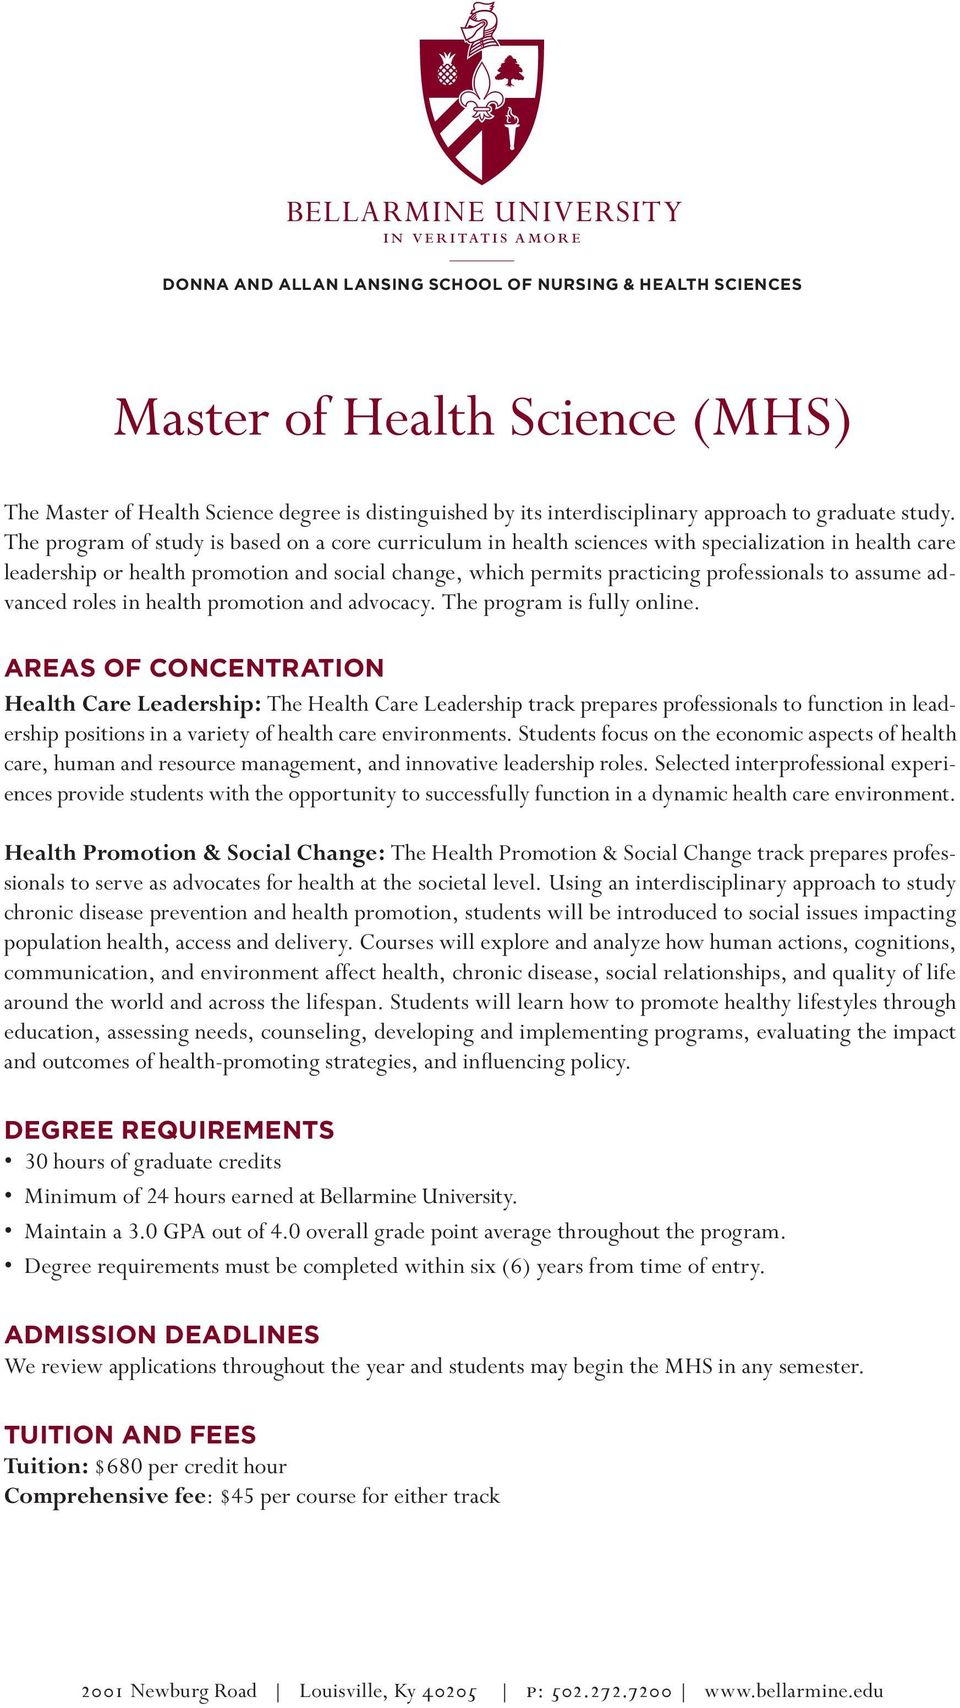 The program of study is based on a core curriculum in health sciences with specialization in health care leadership or health promotion and social change, which permits practicing professionals to